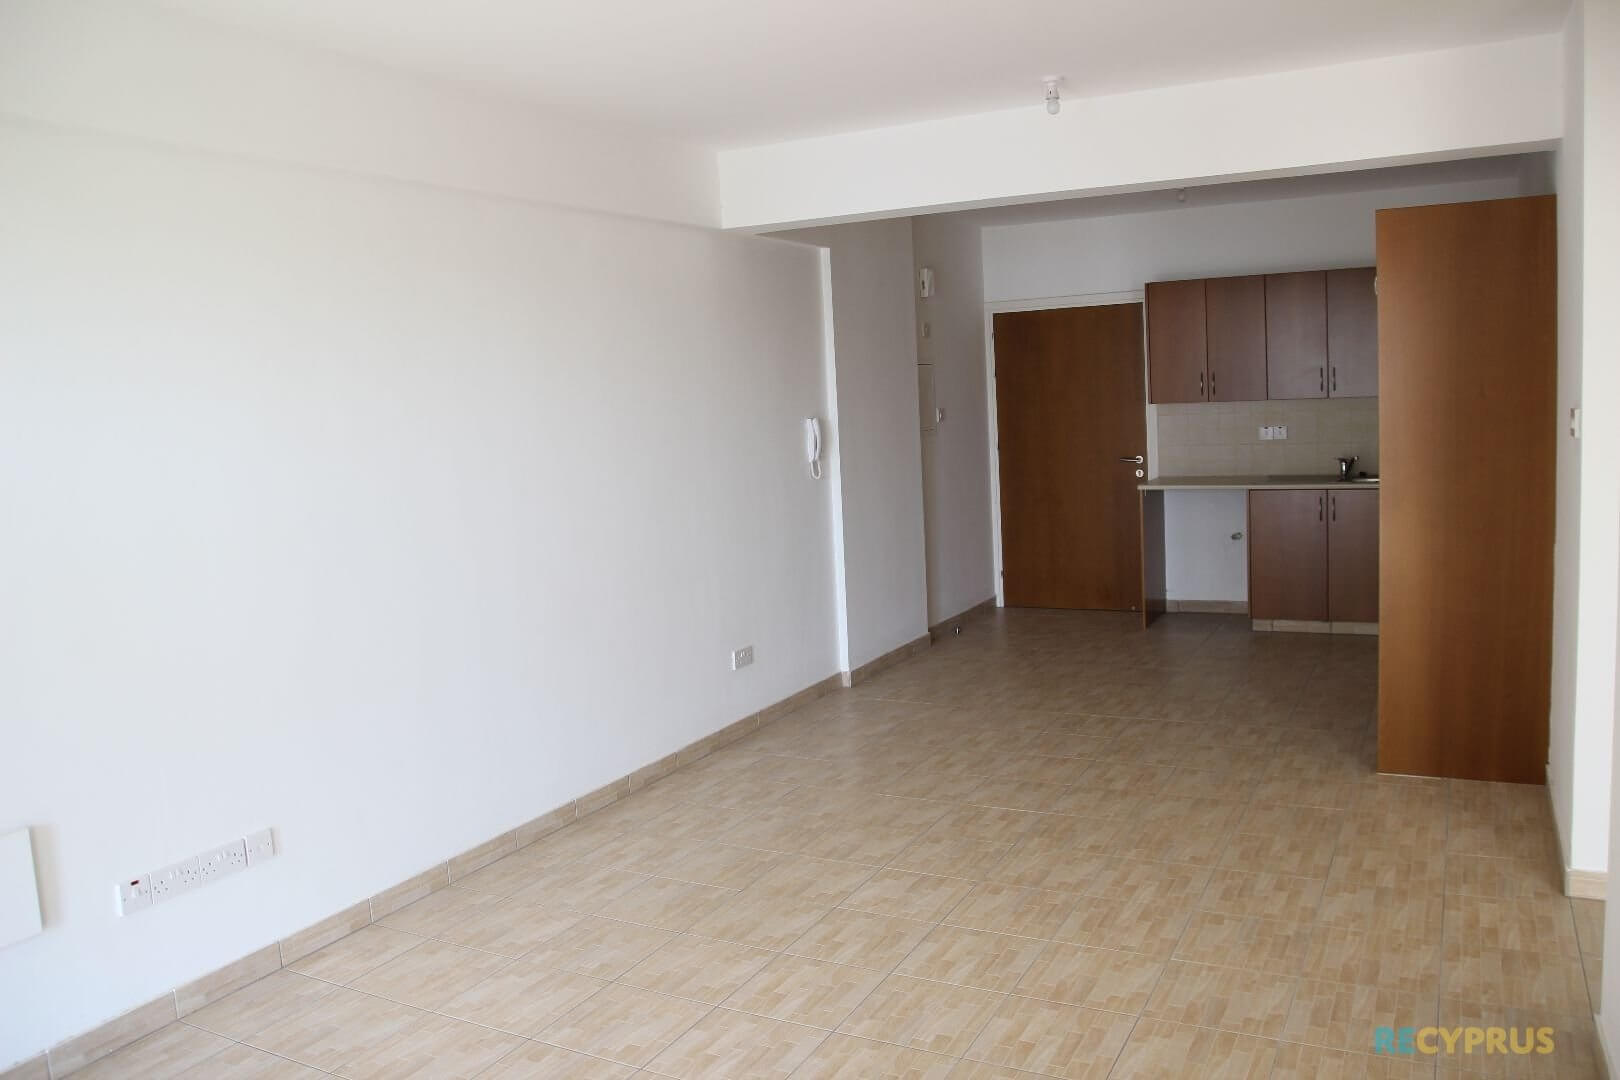 Apartment for sale Kapparis Famagusta Cyprus 2 3519